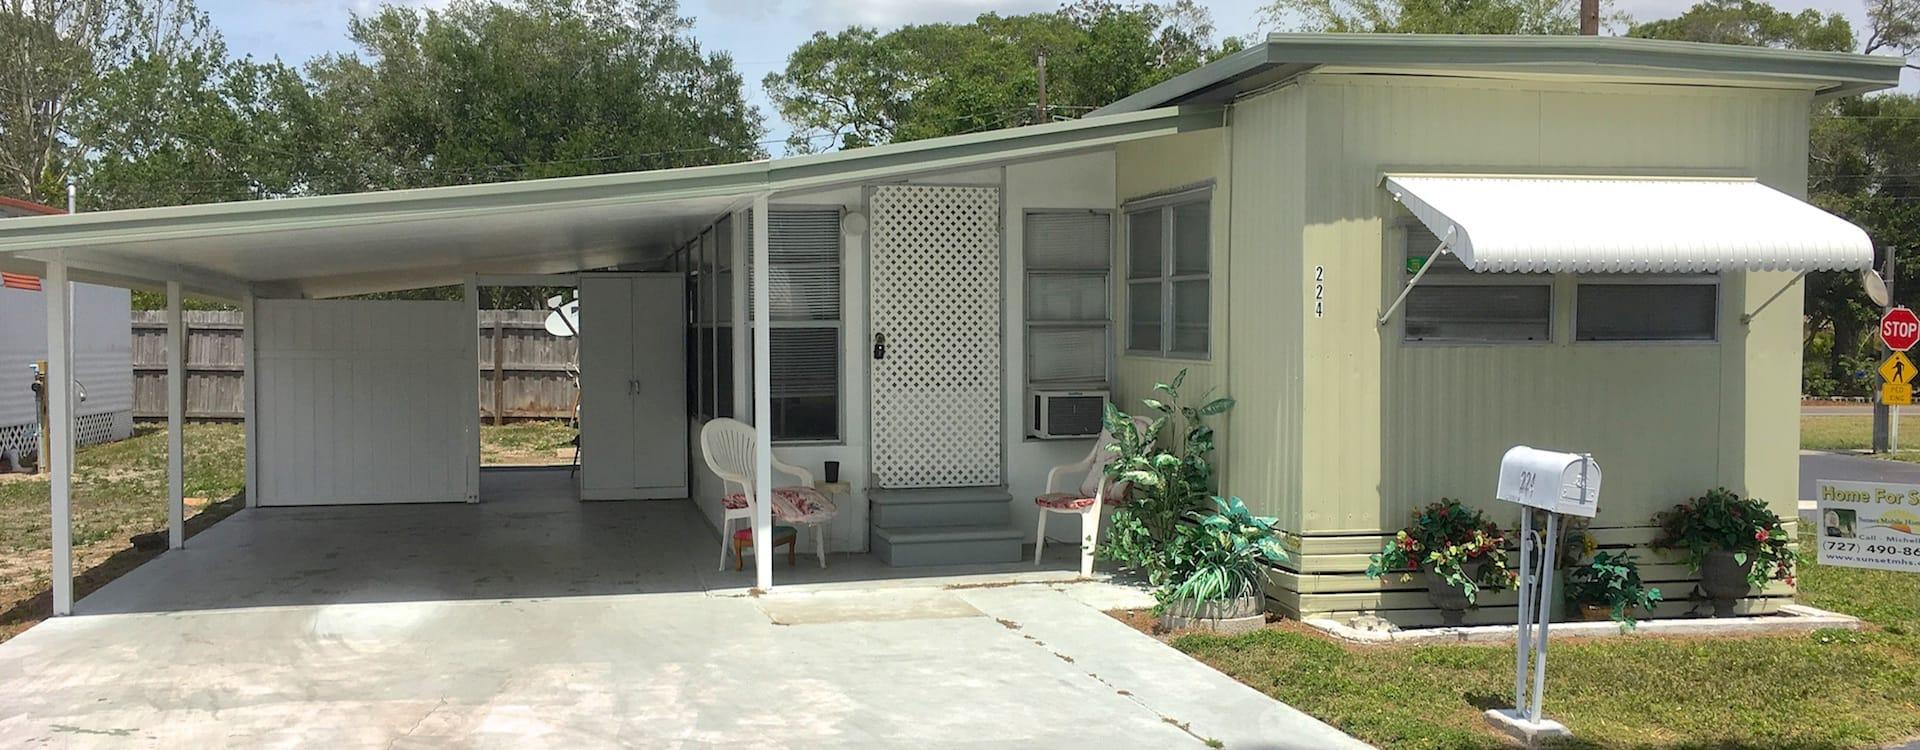 Mobile Homes For Rent Seminole County Fl